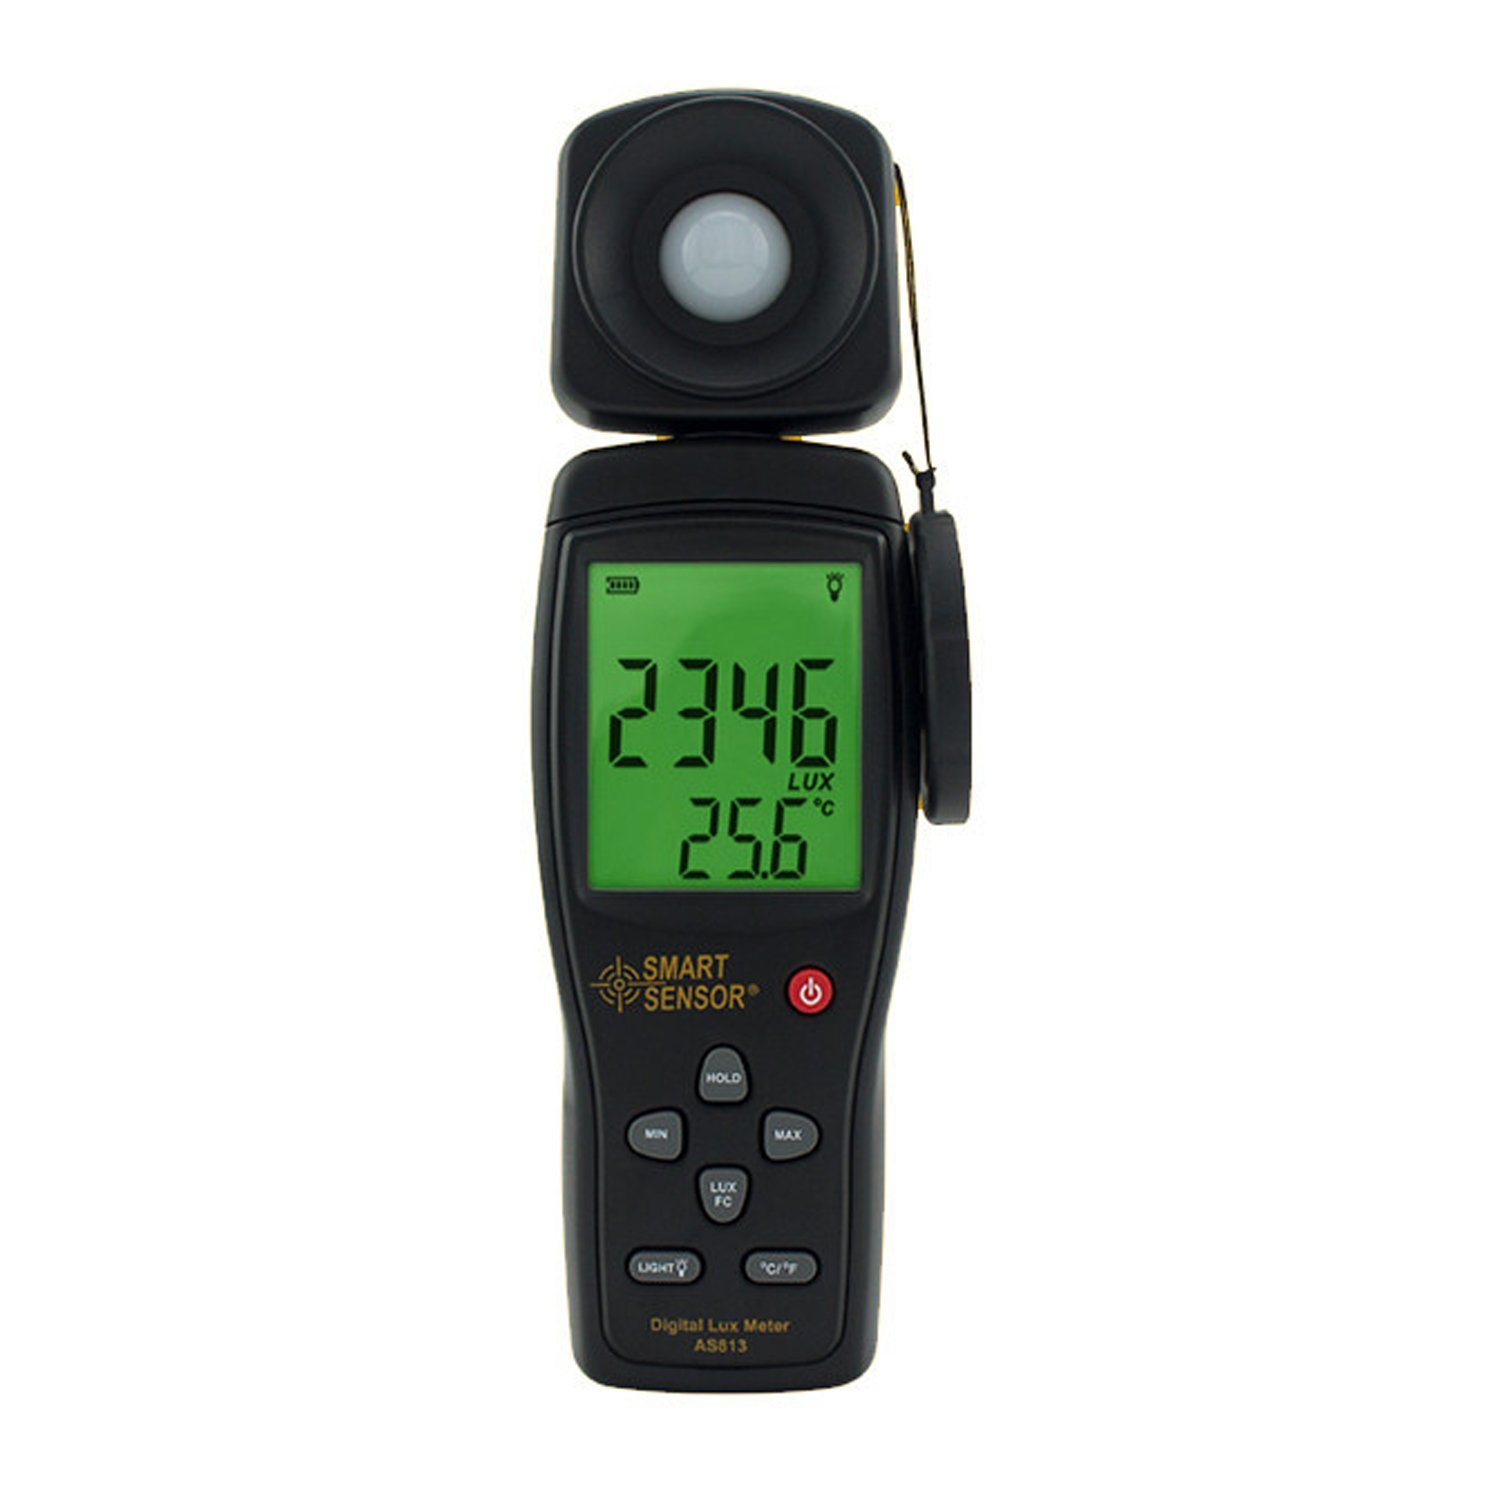 High Precision Digital Lux Meter Light Meter Luminance Tester Photometer Range: 1-200,000 Lux Measurement Tool AS813